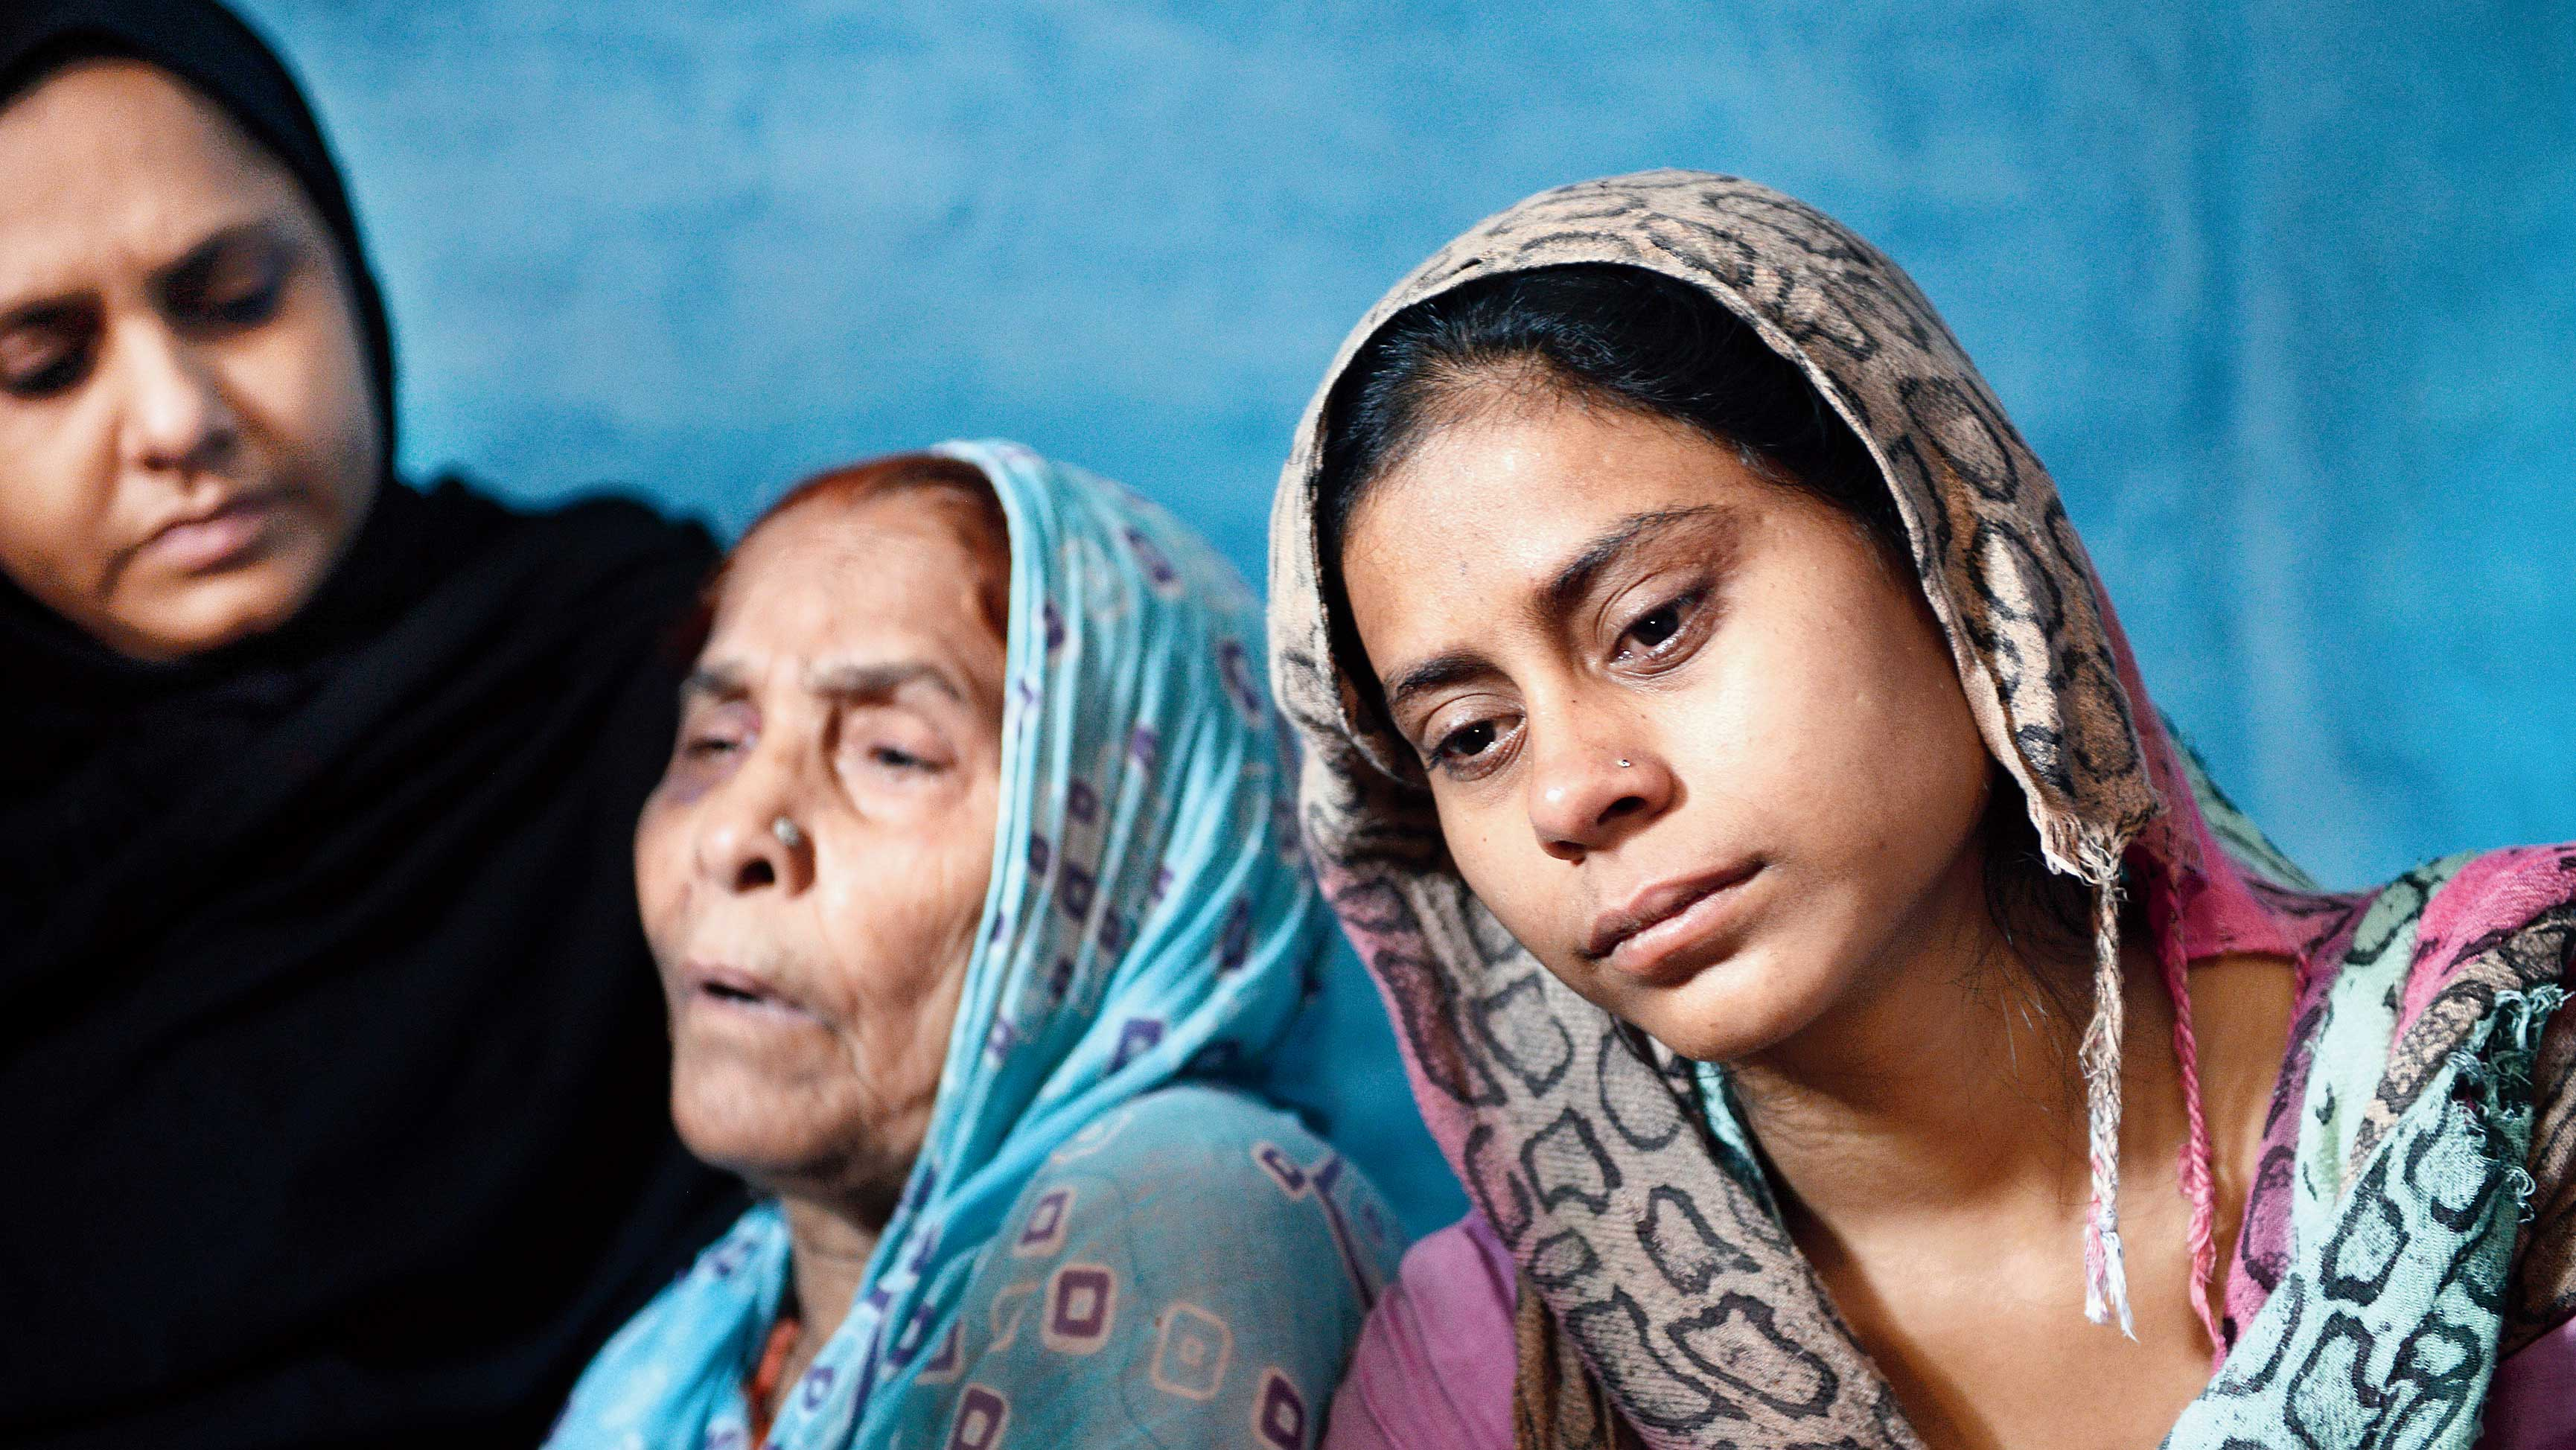 Akhlaque's mother Asgari Begum (centre) and his daughter Shaista (right) at their Bisara home in Dadri in September 2015. Asgari Begum was also beaten up by the raiding mob when she tried to save her son.